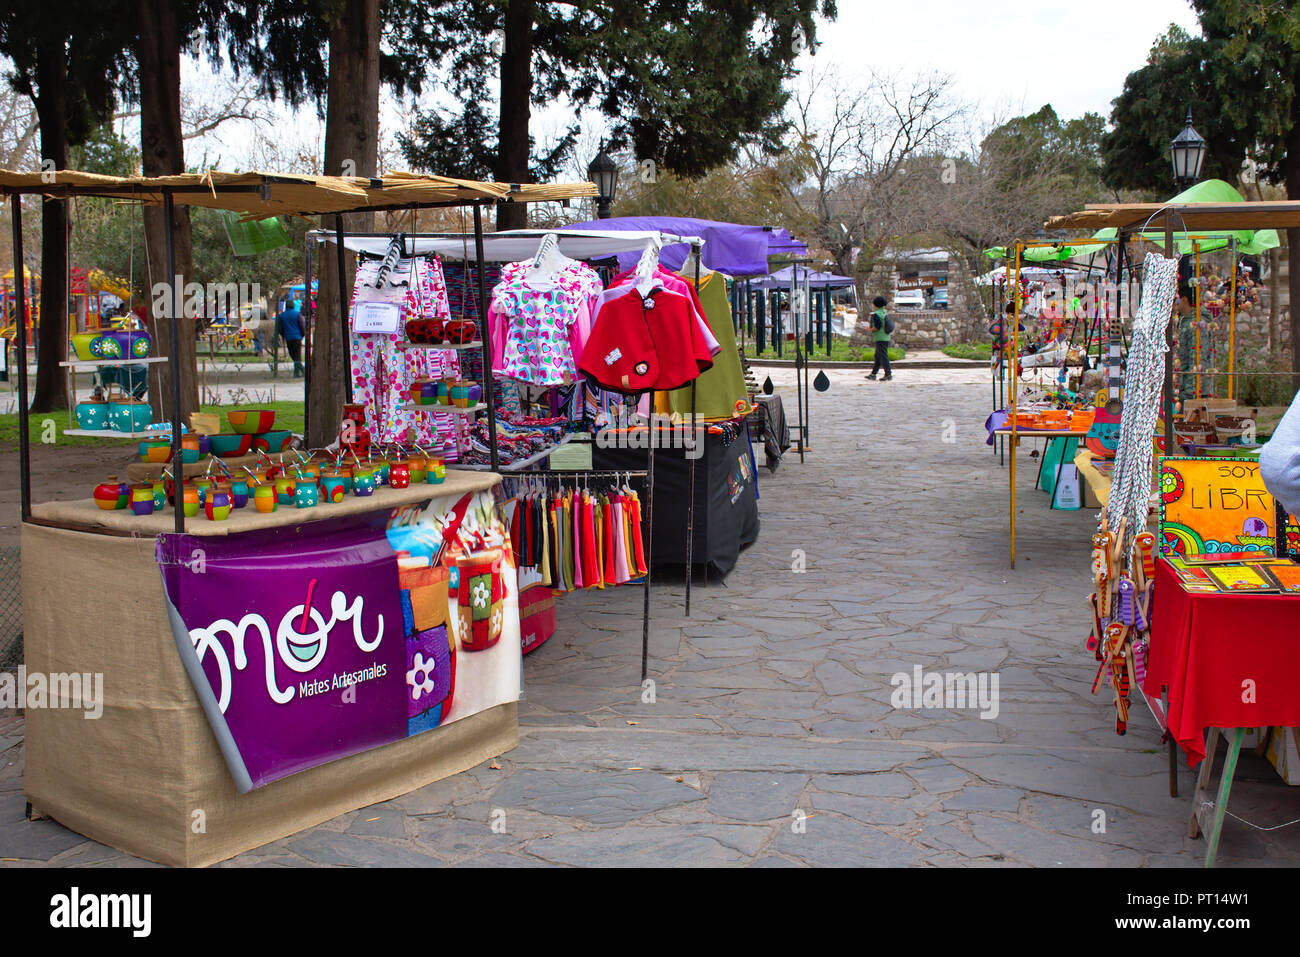 Handcraft market at Plaza San Martín in Villa de las Rosas in Córdoba province - Argentina Stock Photo